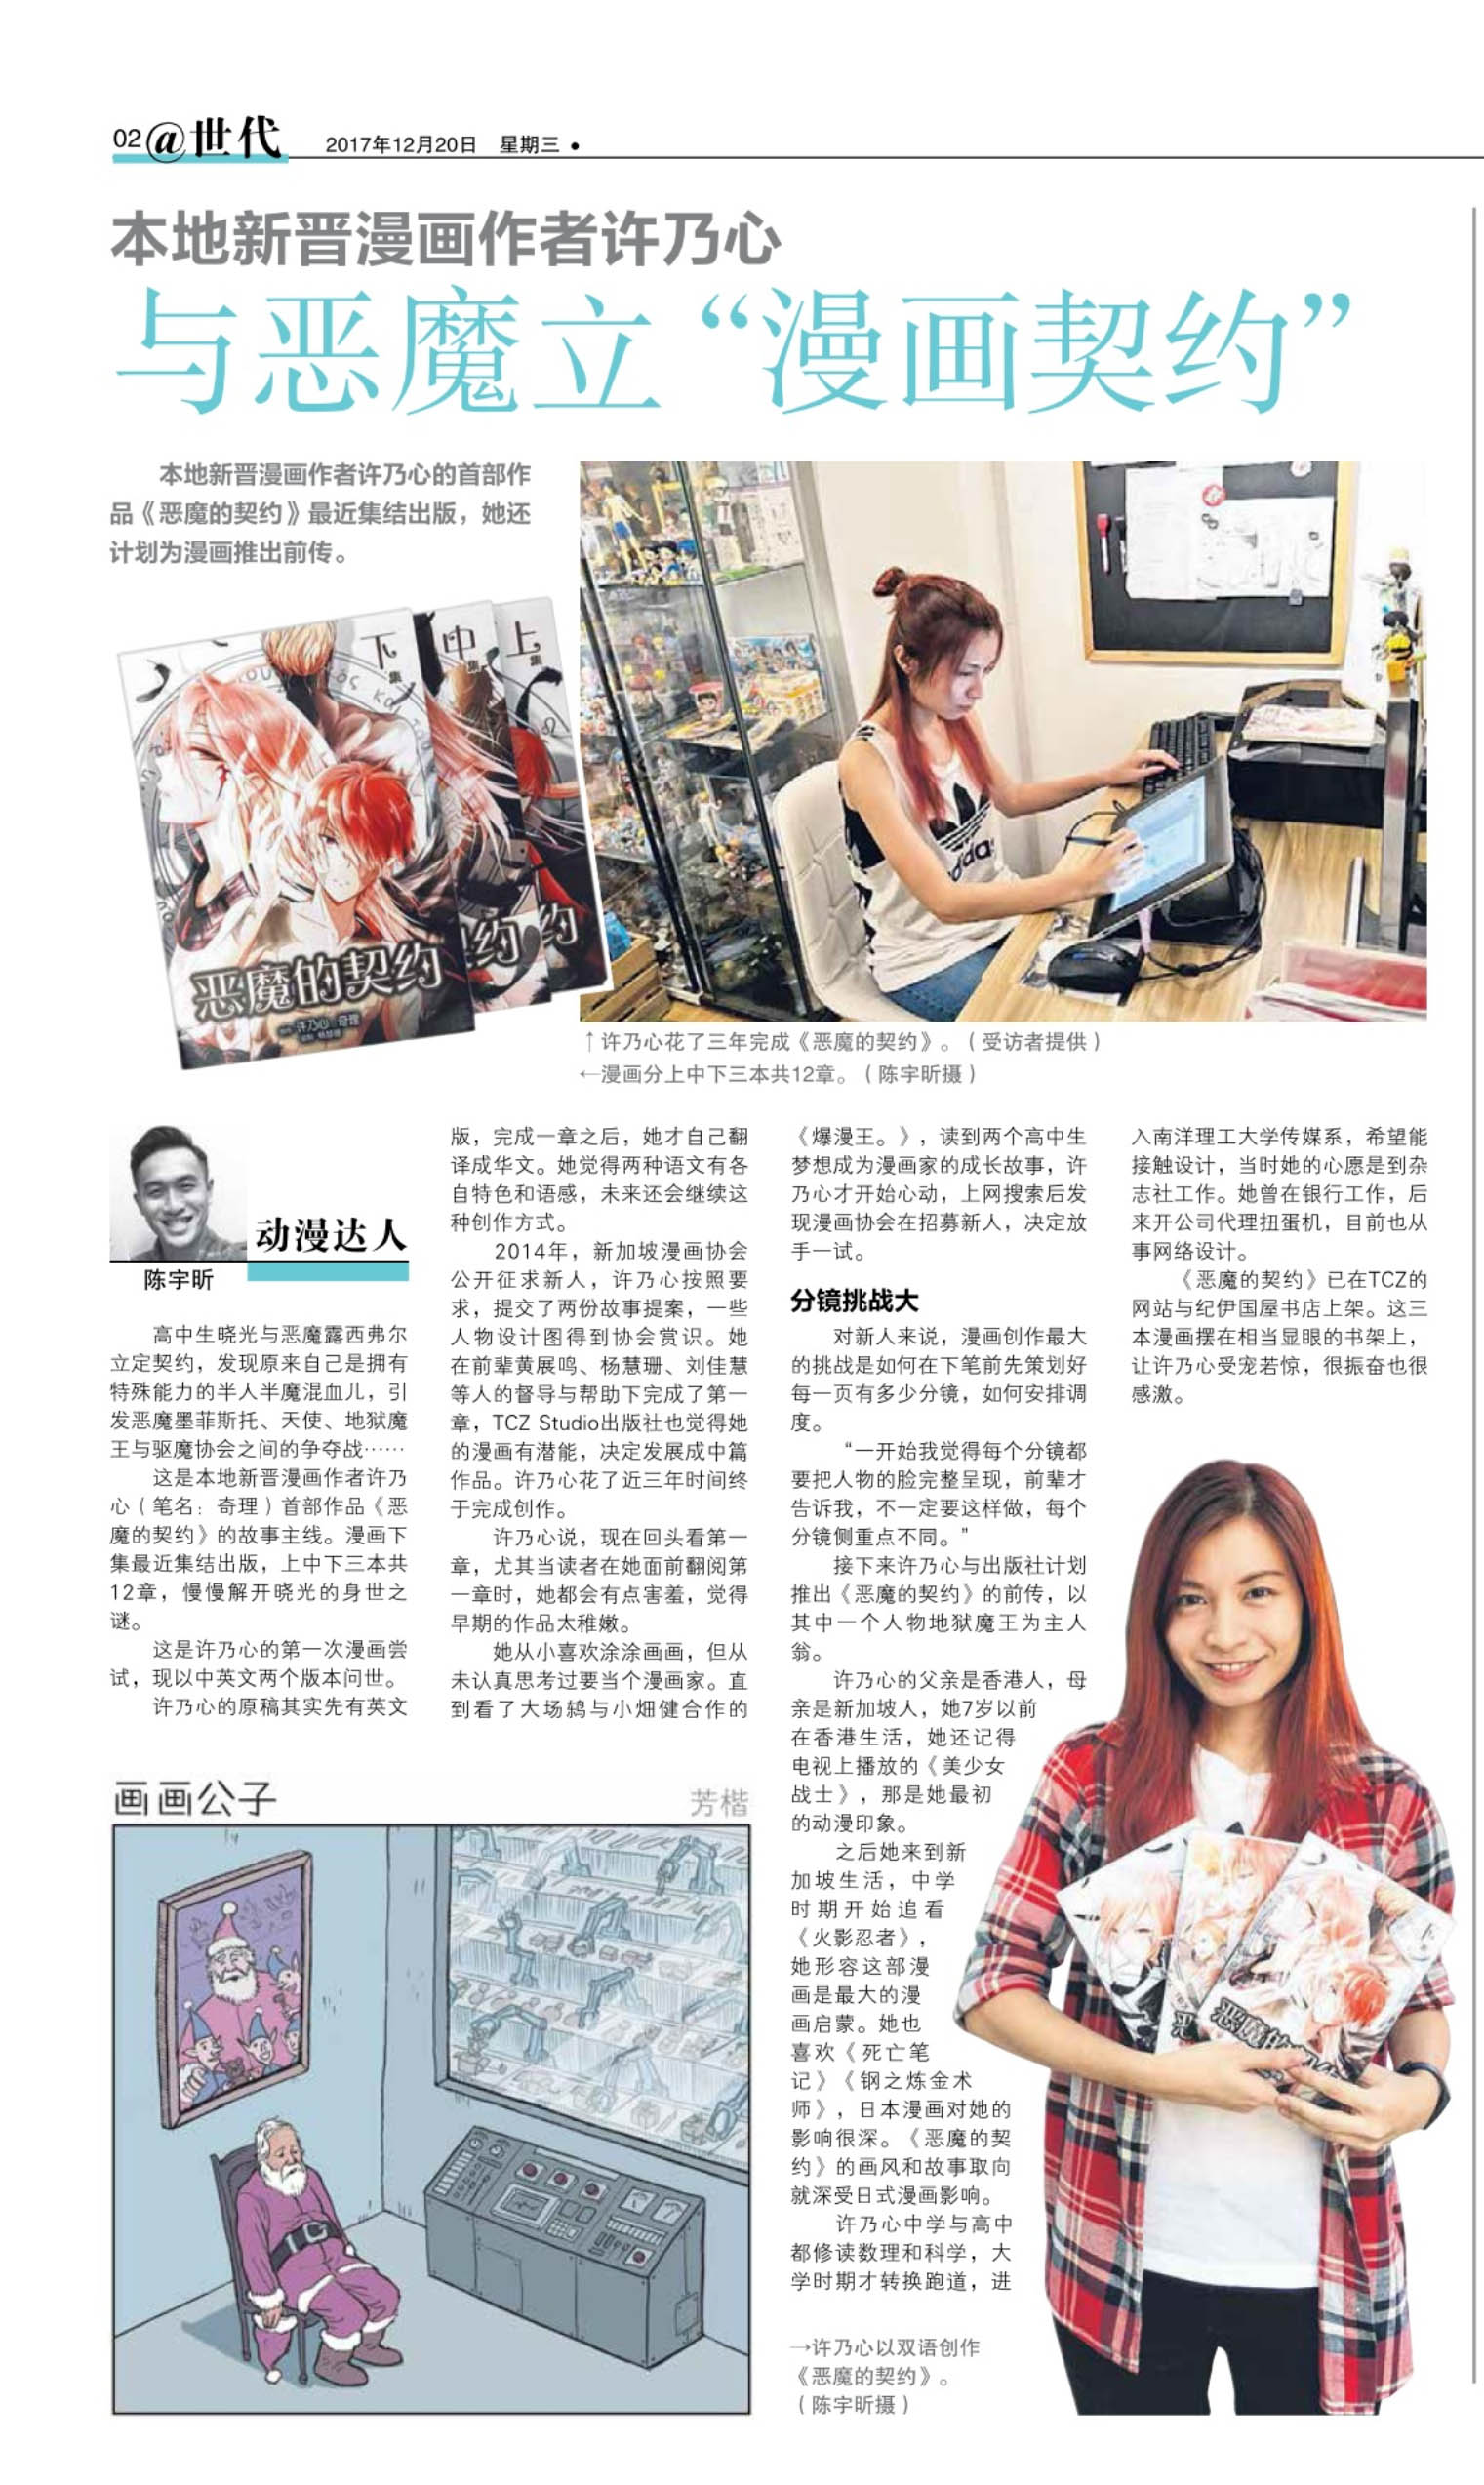 Lianhe Zaobao News article